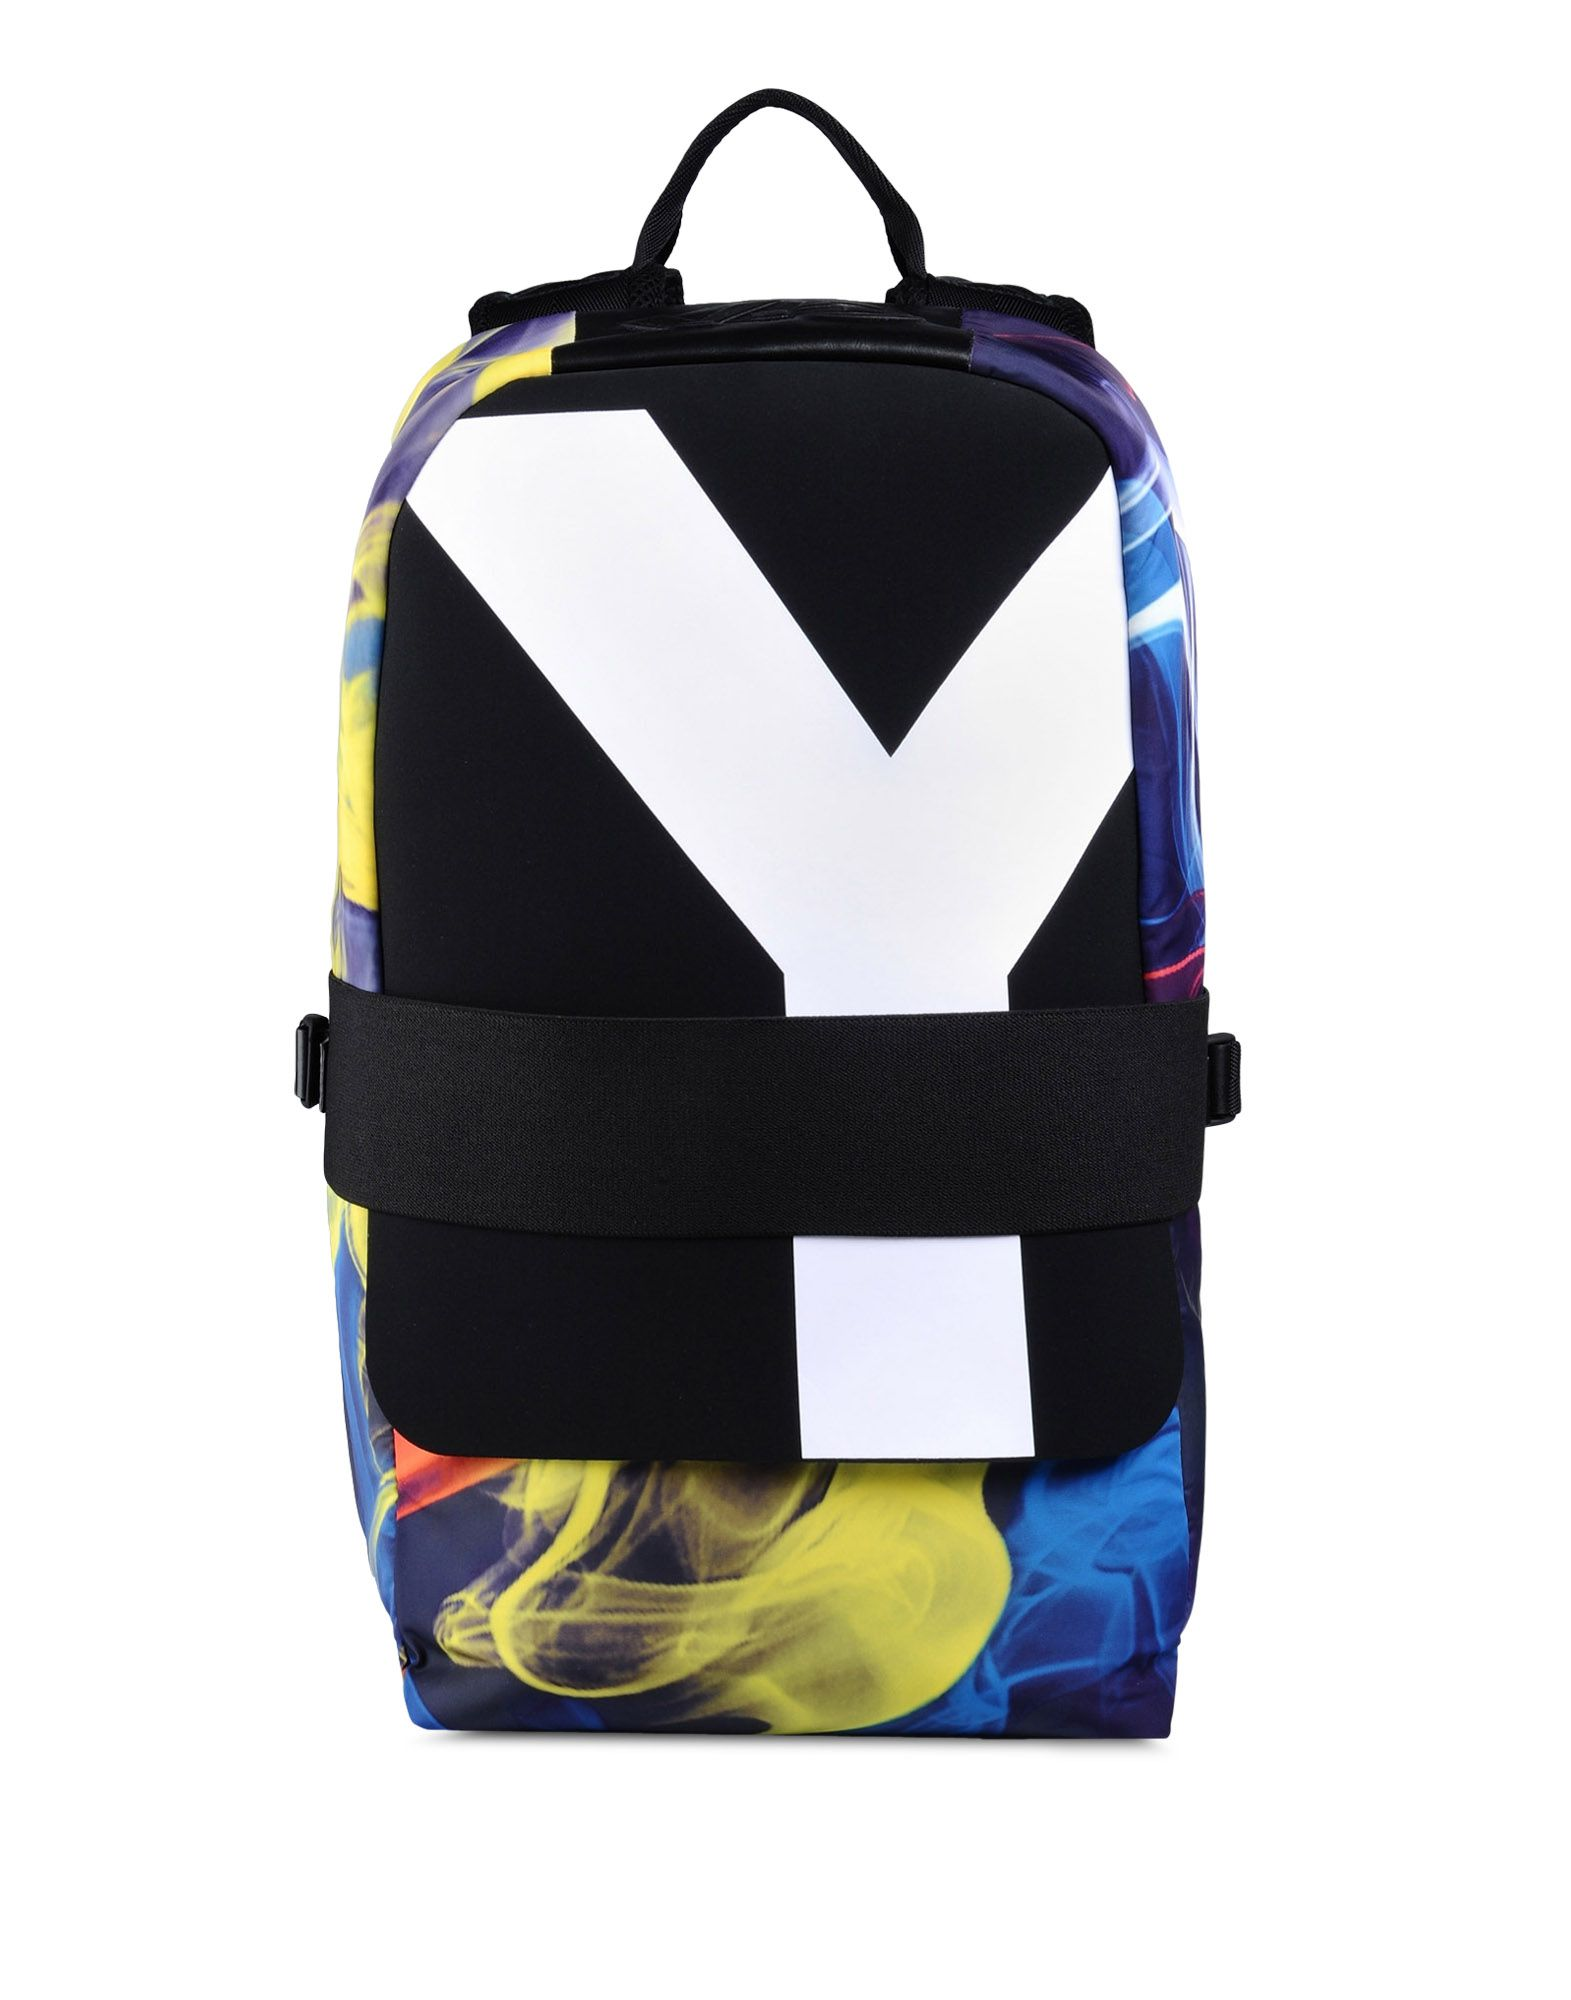 c47f7549a0e Y 3 QASA BACKPACK Backpacks   Adidas Y-3 Official Site